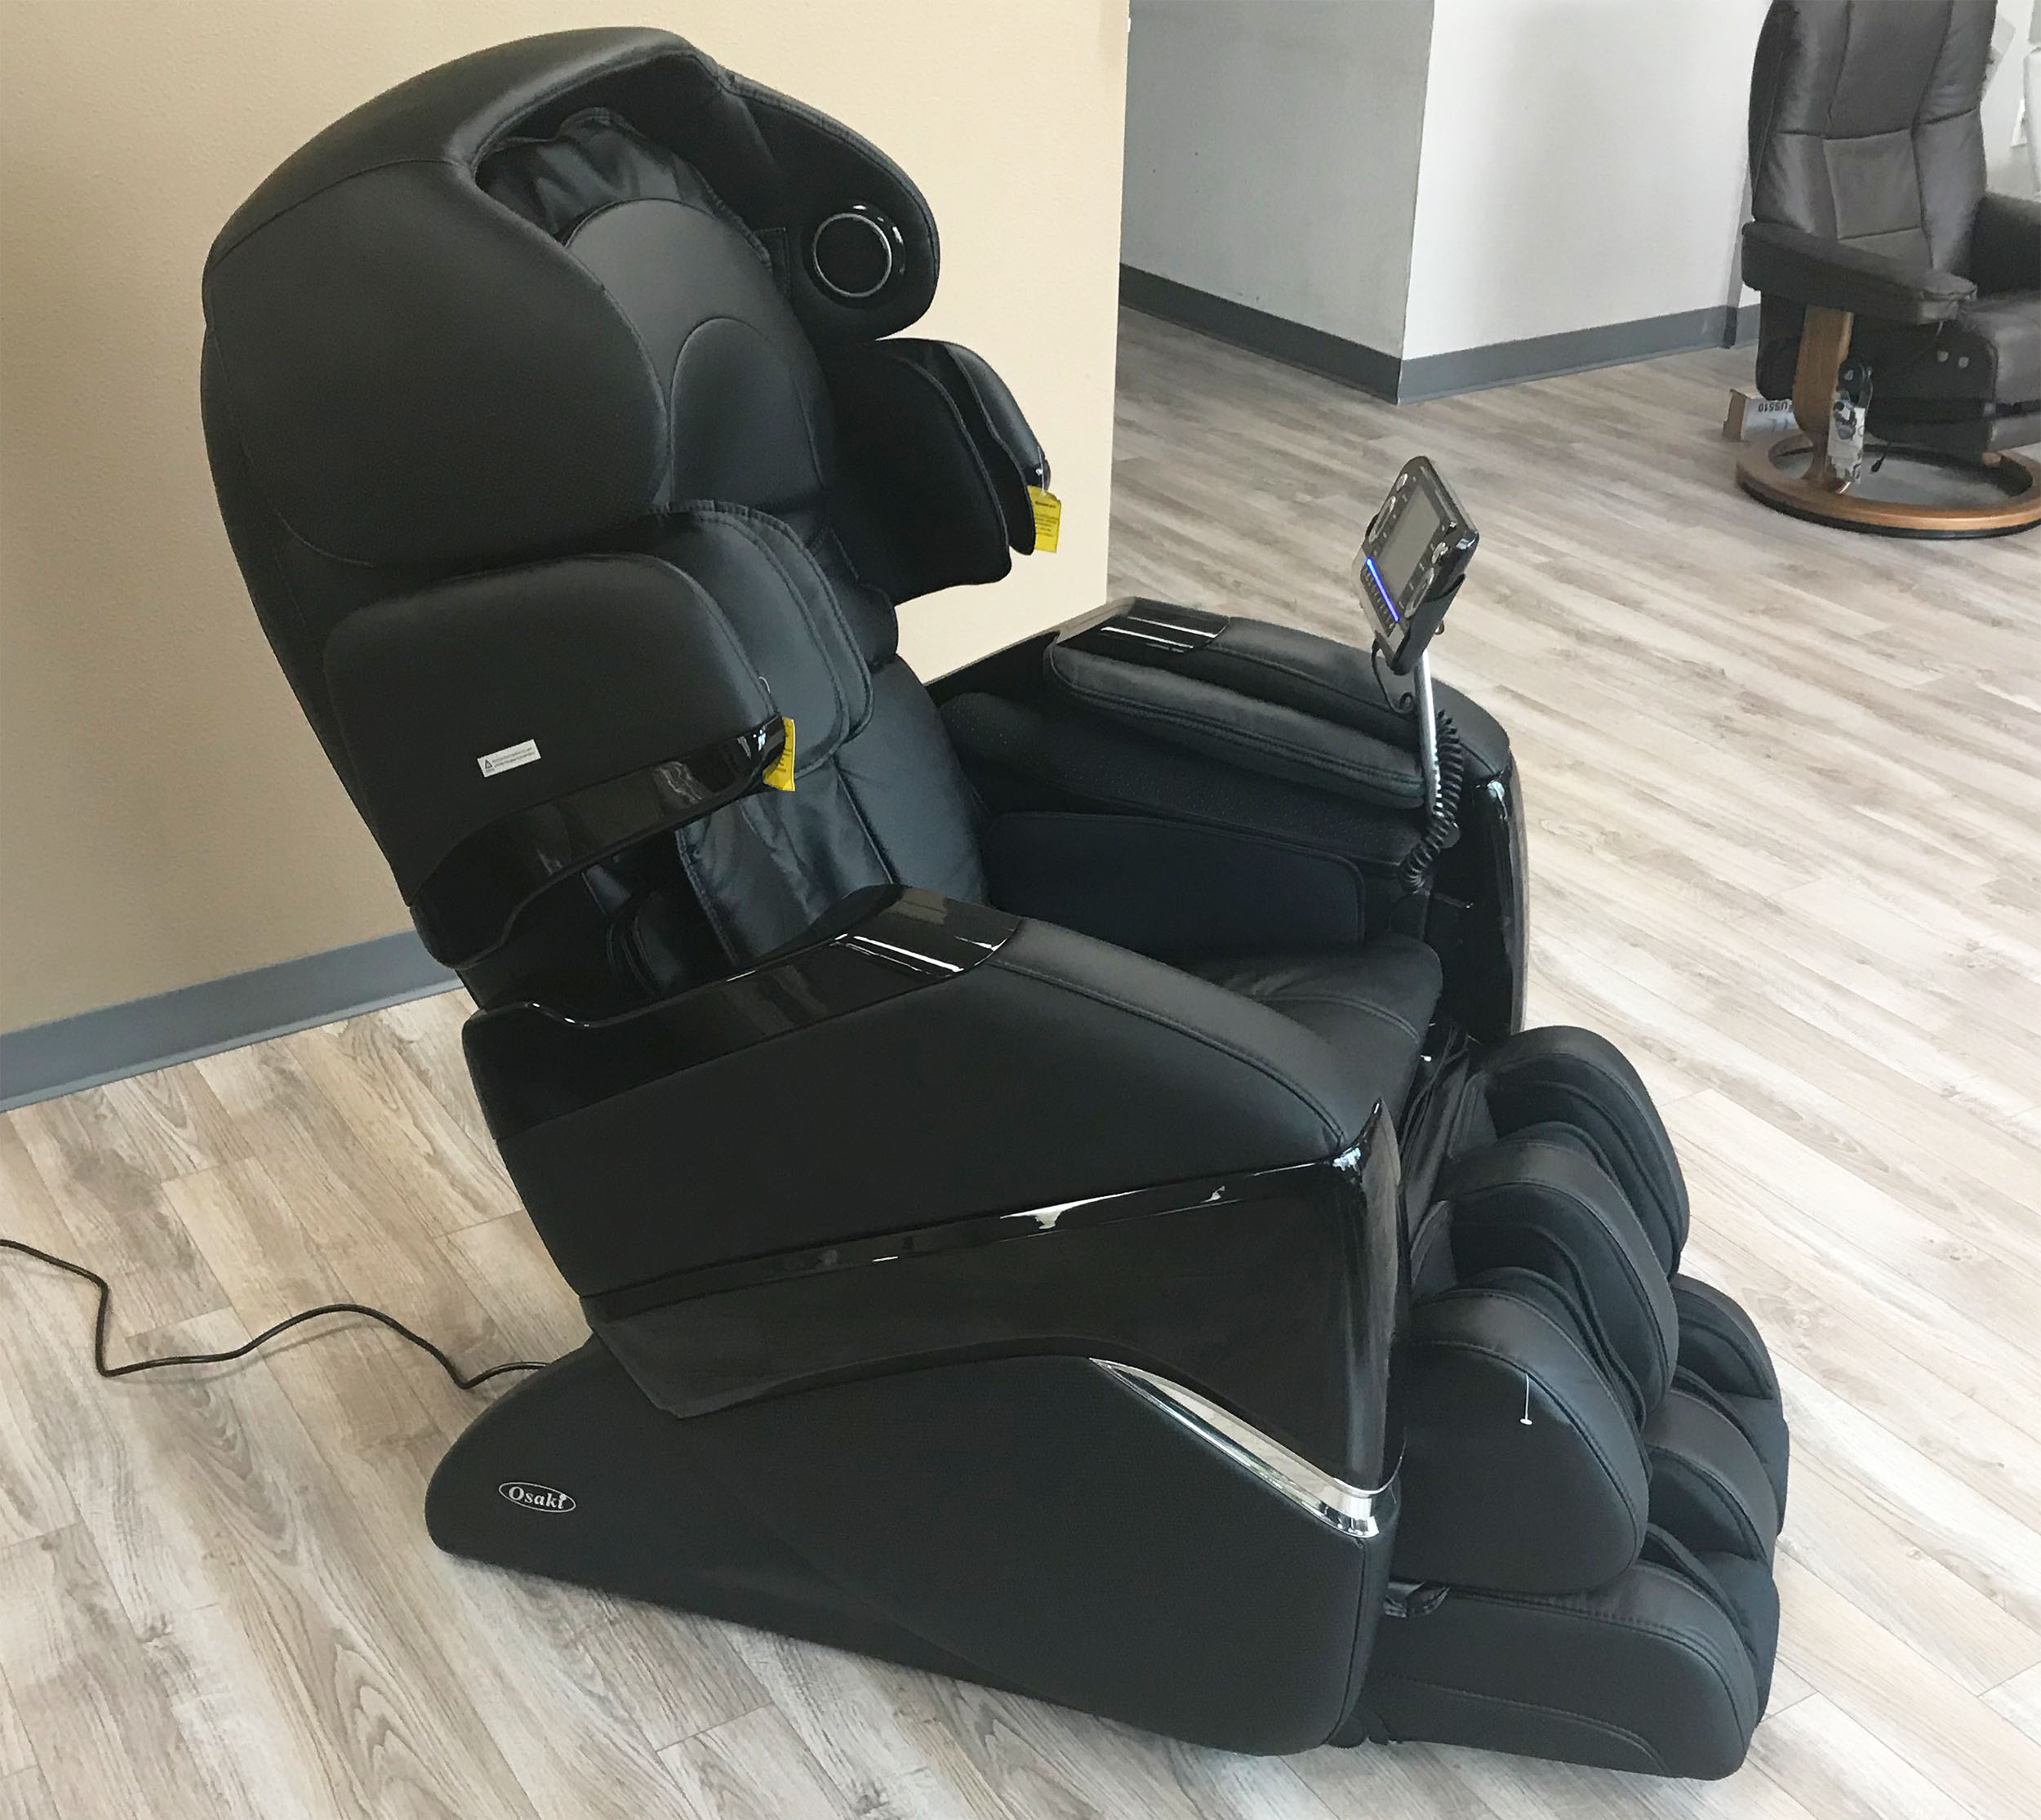 Osaki Massage Chairs Osaki Massage Chair Zero Gravity Recliner Recliner And